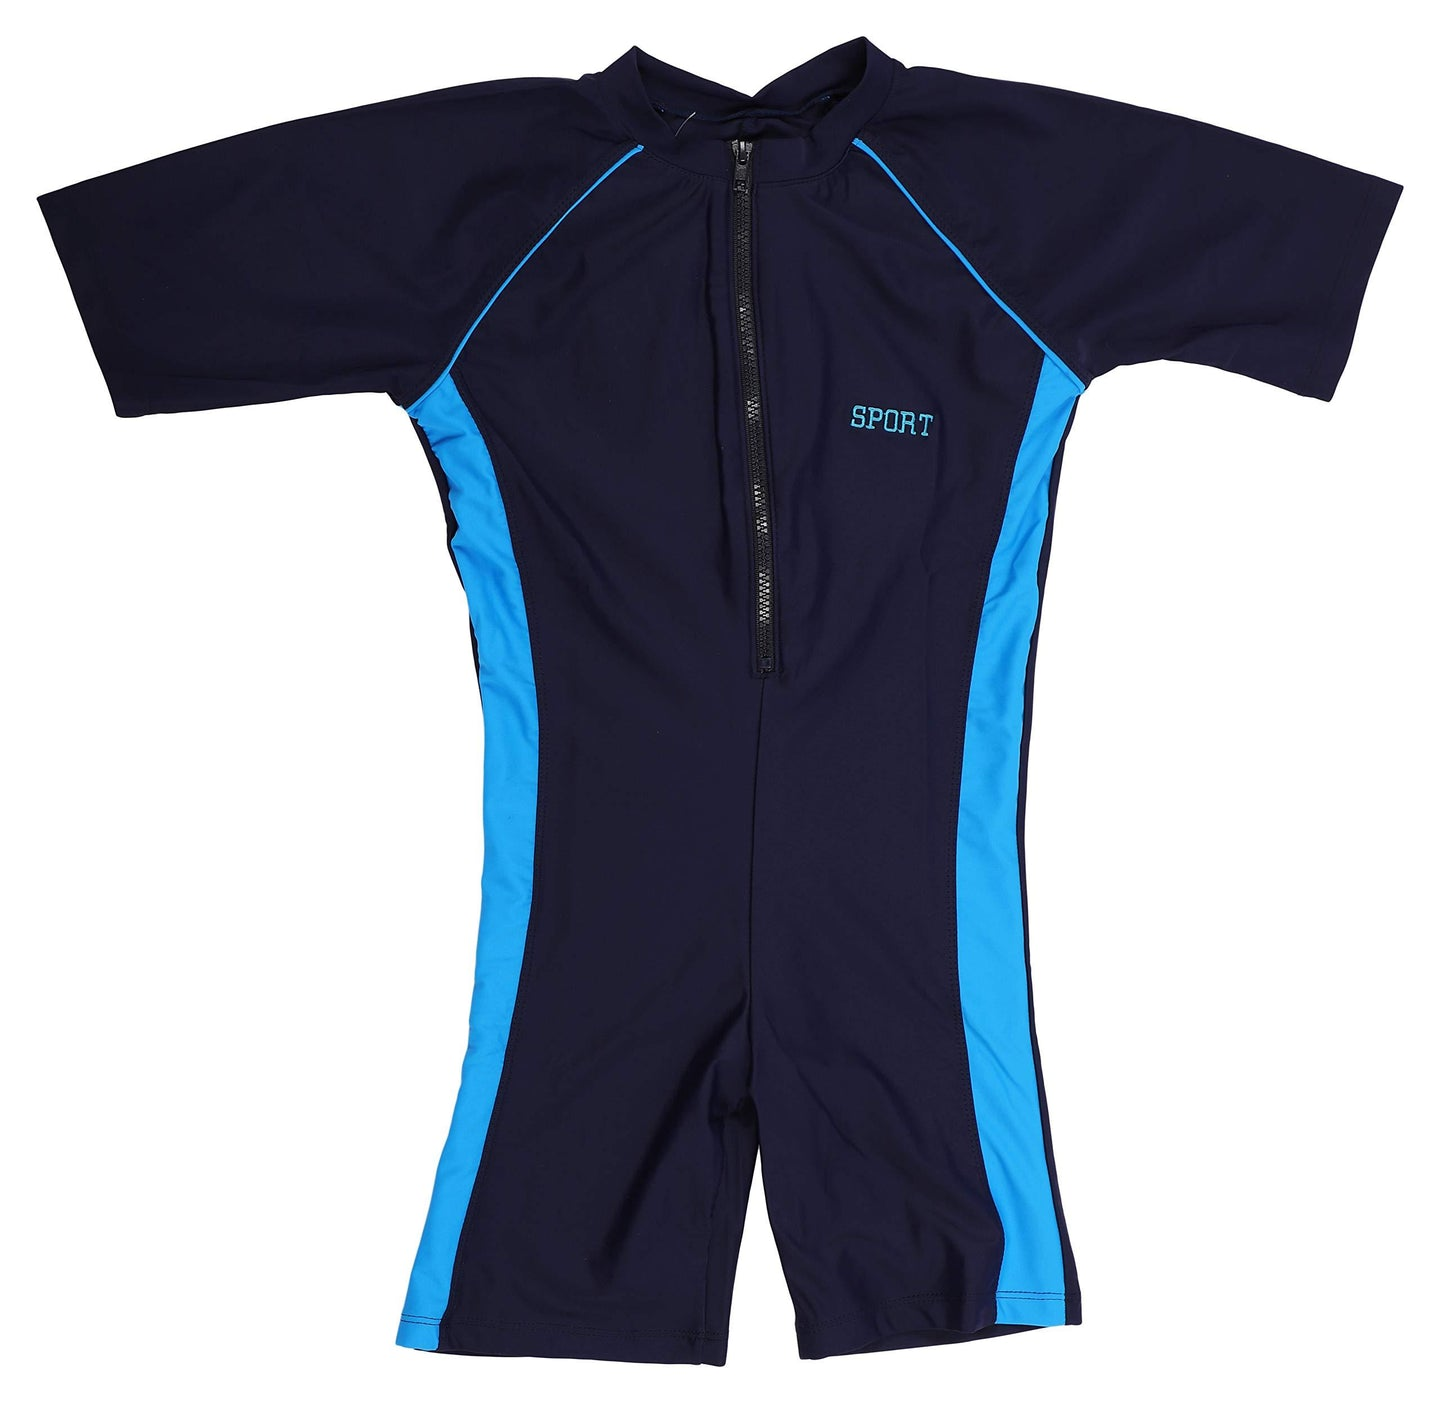 Romano nx Boys' Swim Suit romanonx.com 10 Years-11 Years